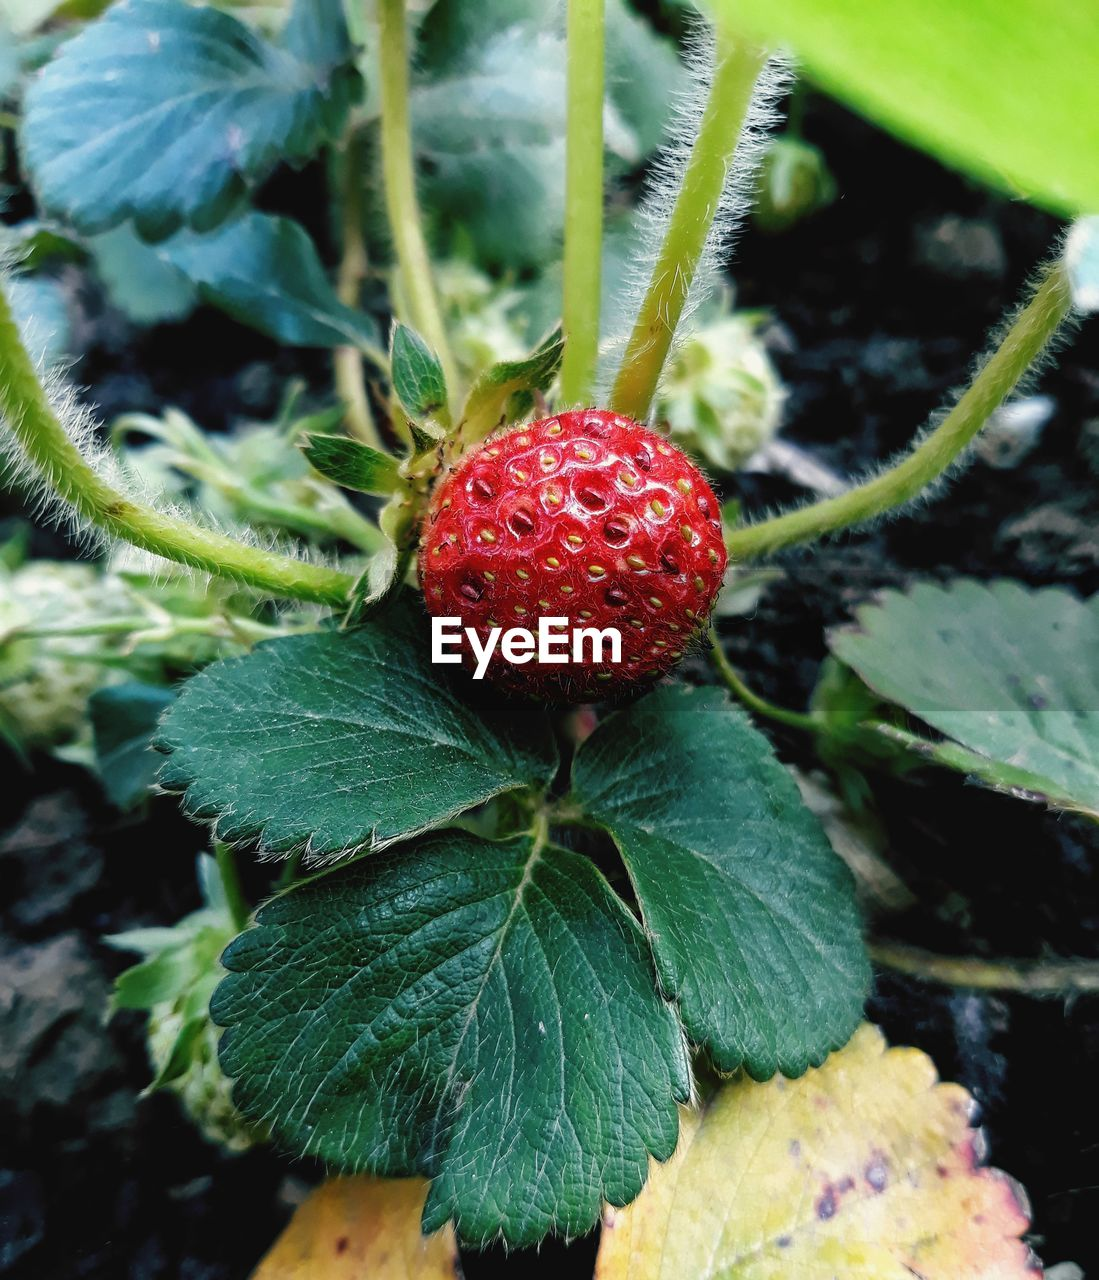 fruit, plant part, leaf, healthy eating, food, red, food and drink, berry fruit, growth, close-up, freshness, green color, nature, day, plant, wellbeing, no people, focus on foreground, outdoors, strawberry, ripe, sepal